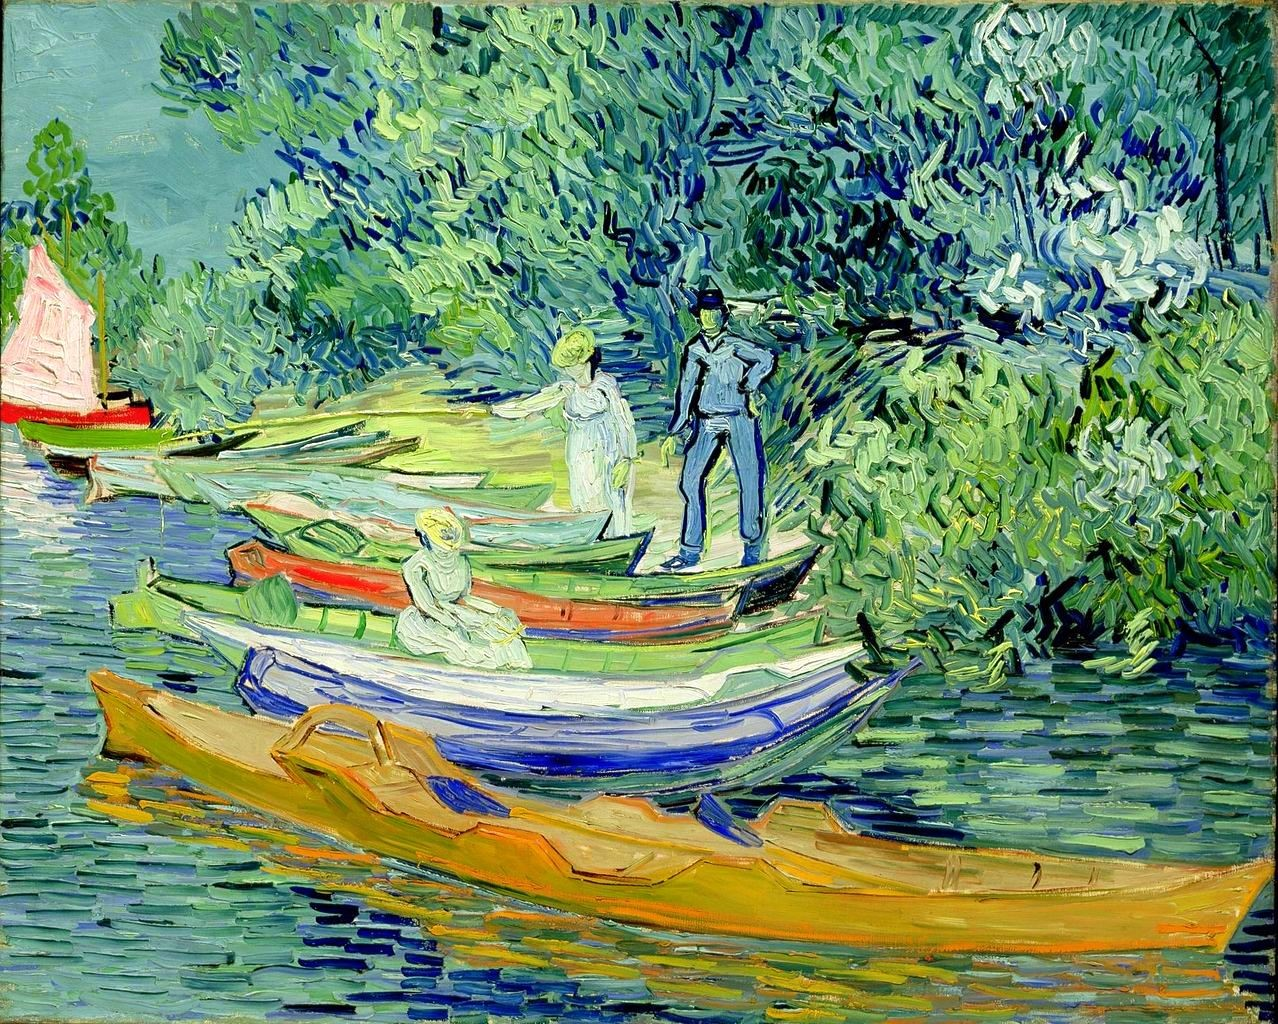 Bank of the Oise at Auvers,1890, Vincent van Gogh